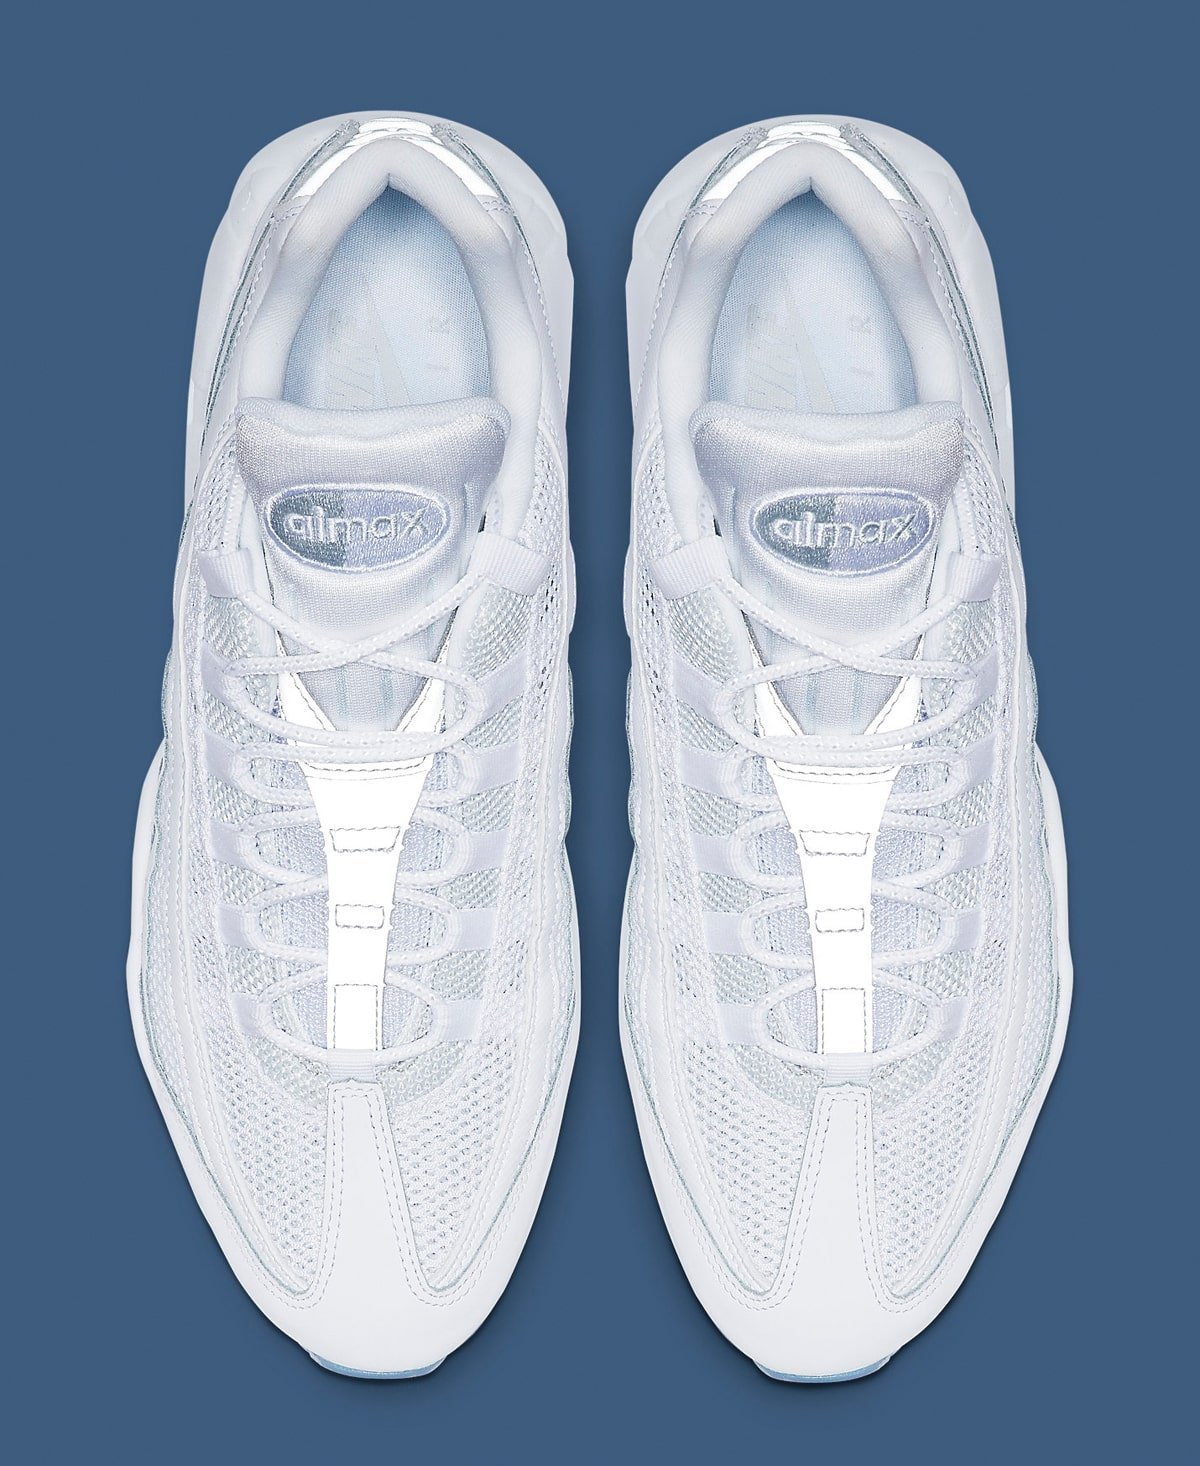 235401bae0 Available Now // Icy Soles Hit the Iconic Air Max 95 for Spring ...